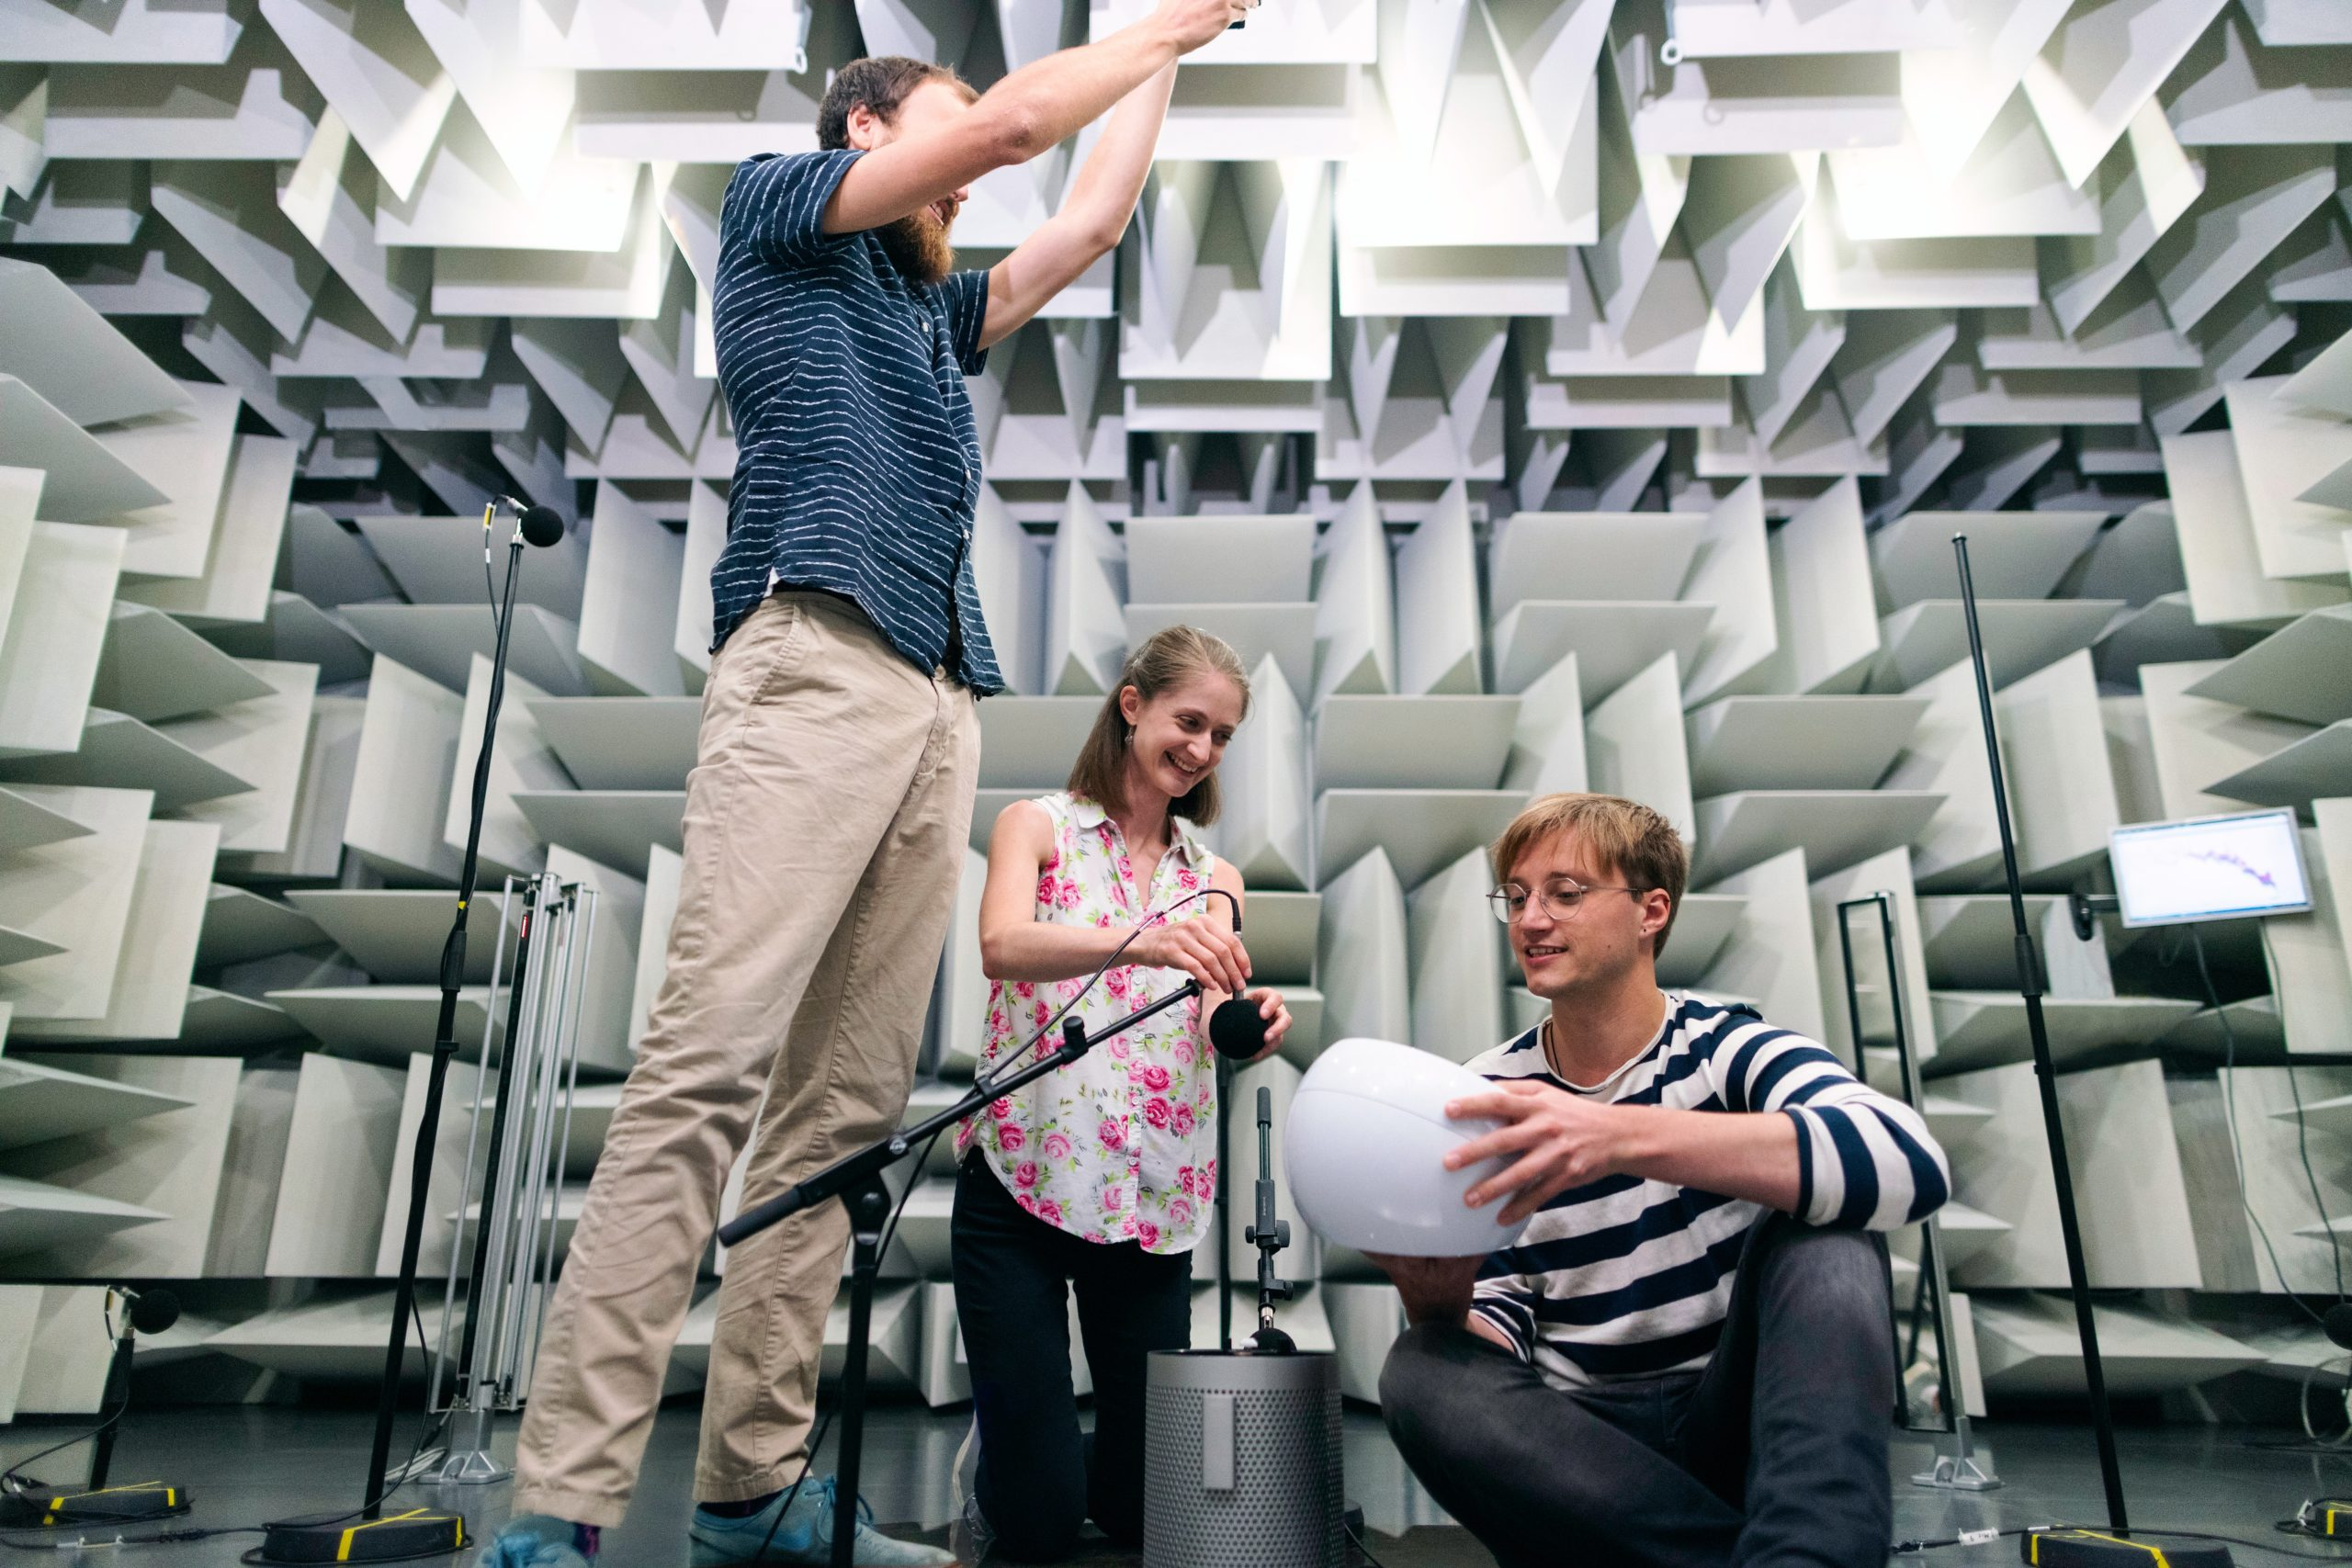 Testing products in a hemi-anechoic chamber allows for more precise results